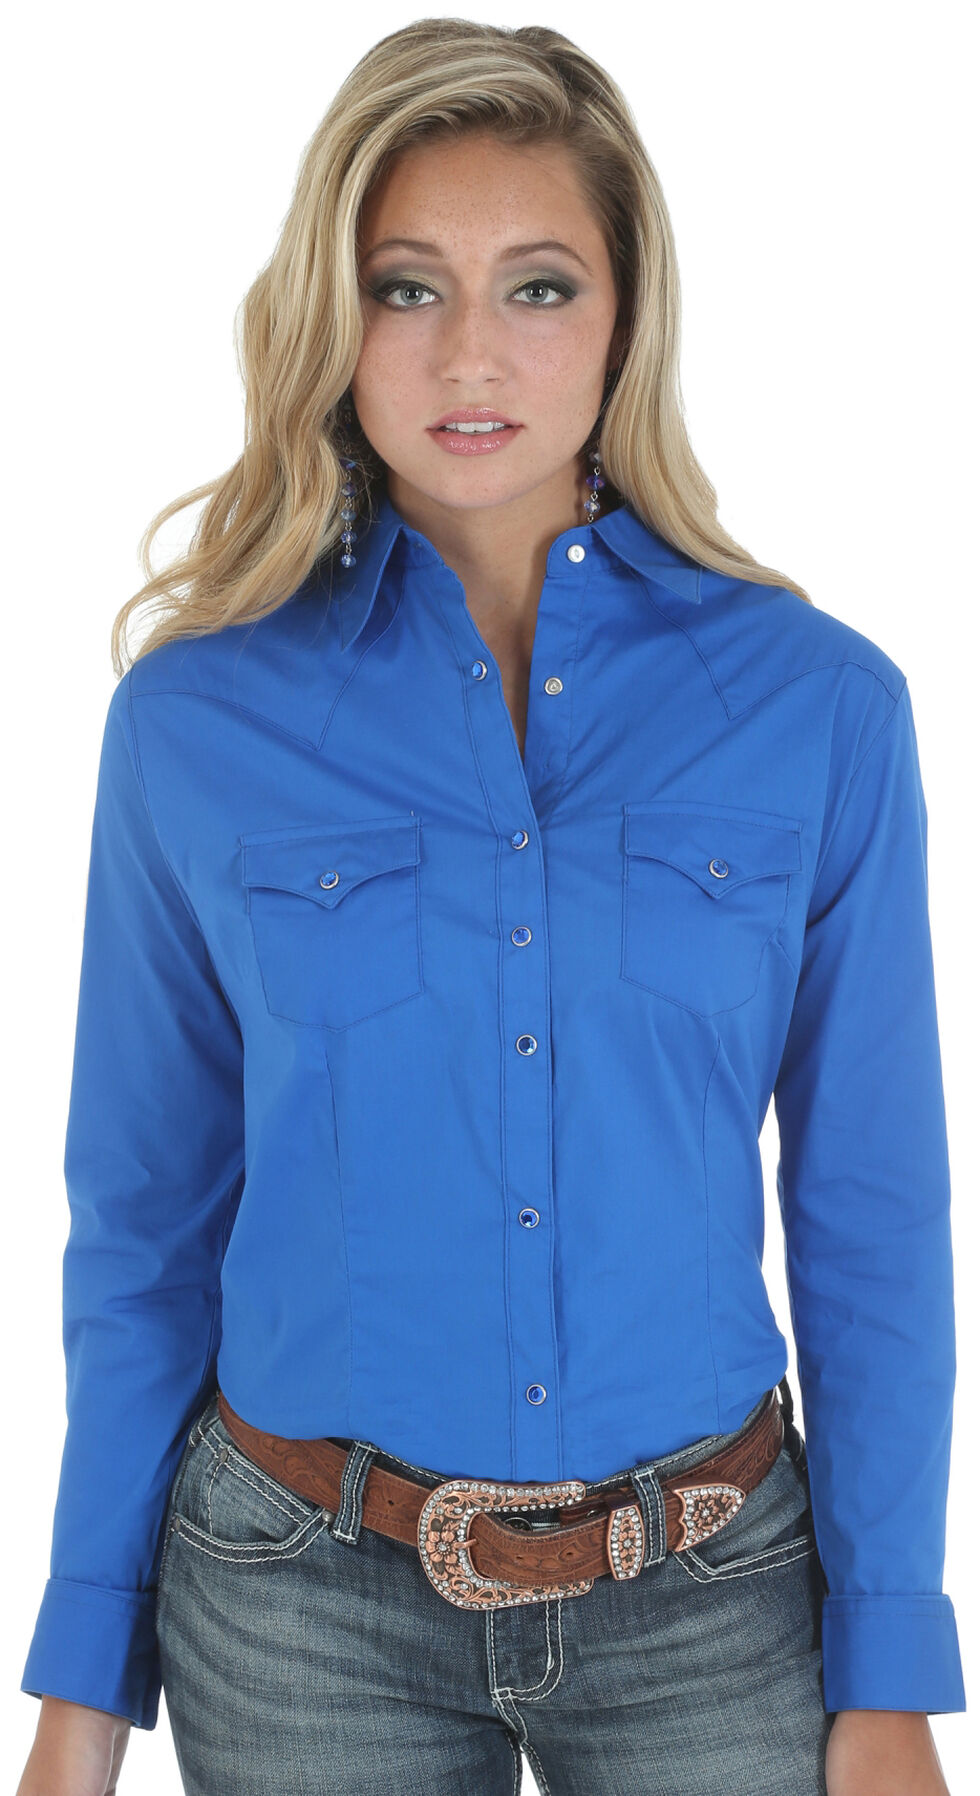 Wrangler Women's Solid Blue Snap Pocket Western Shirt , Blue, hi-res